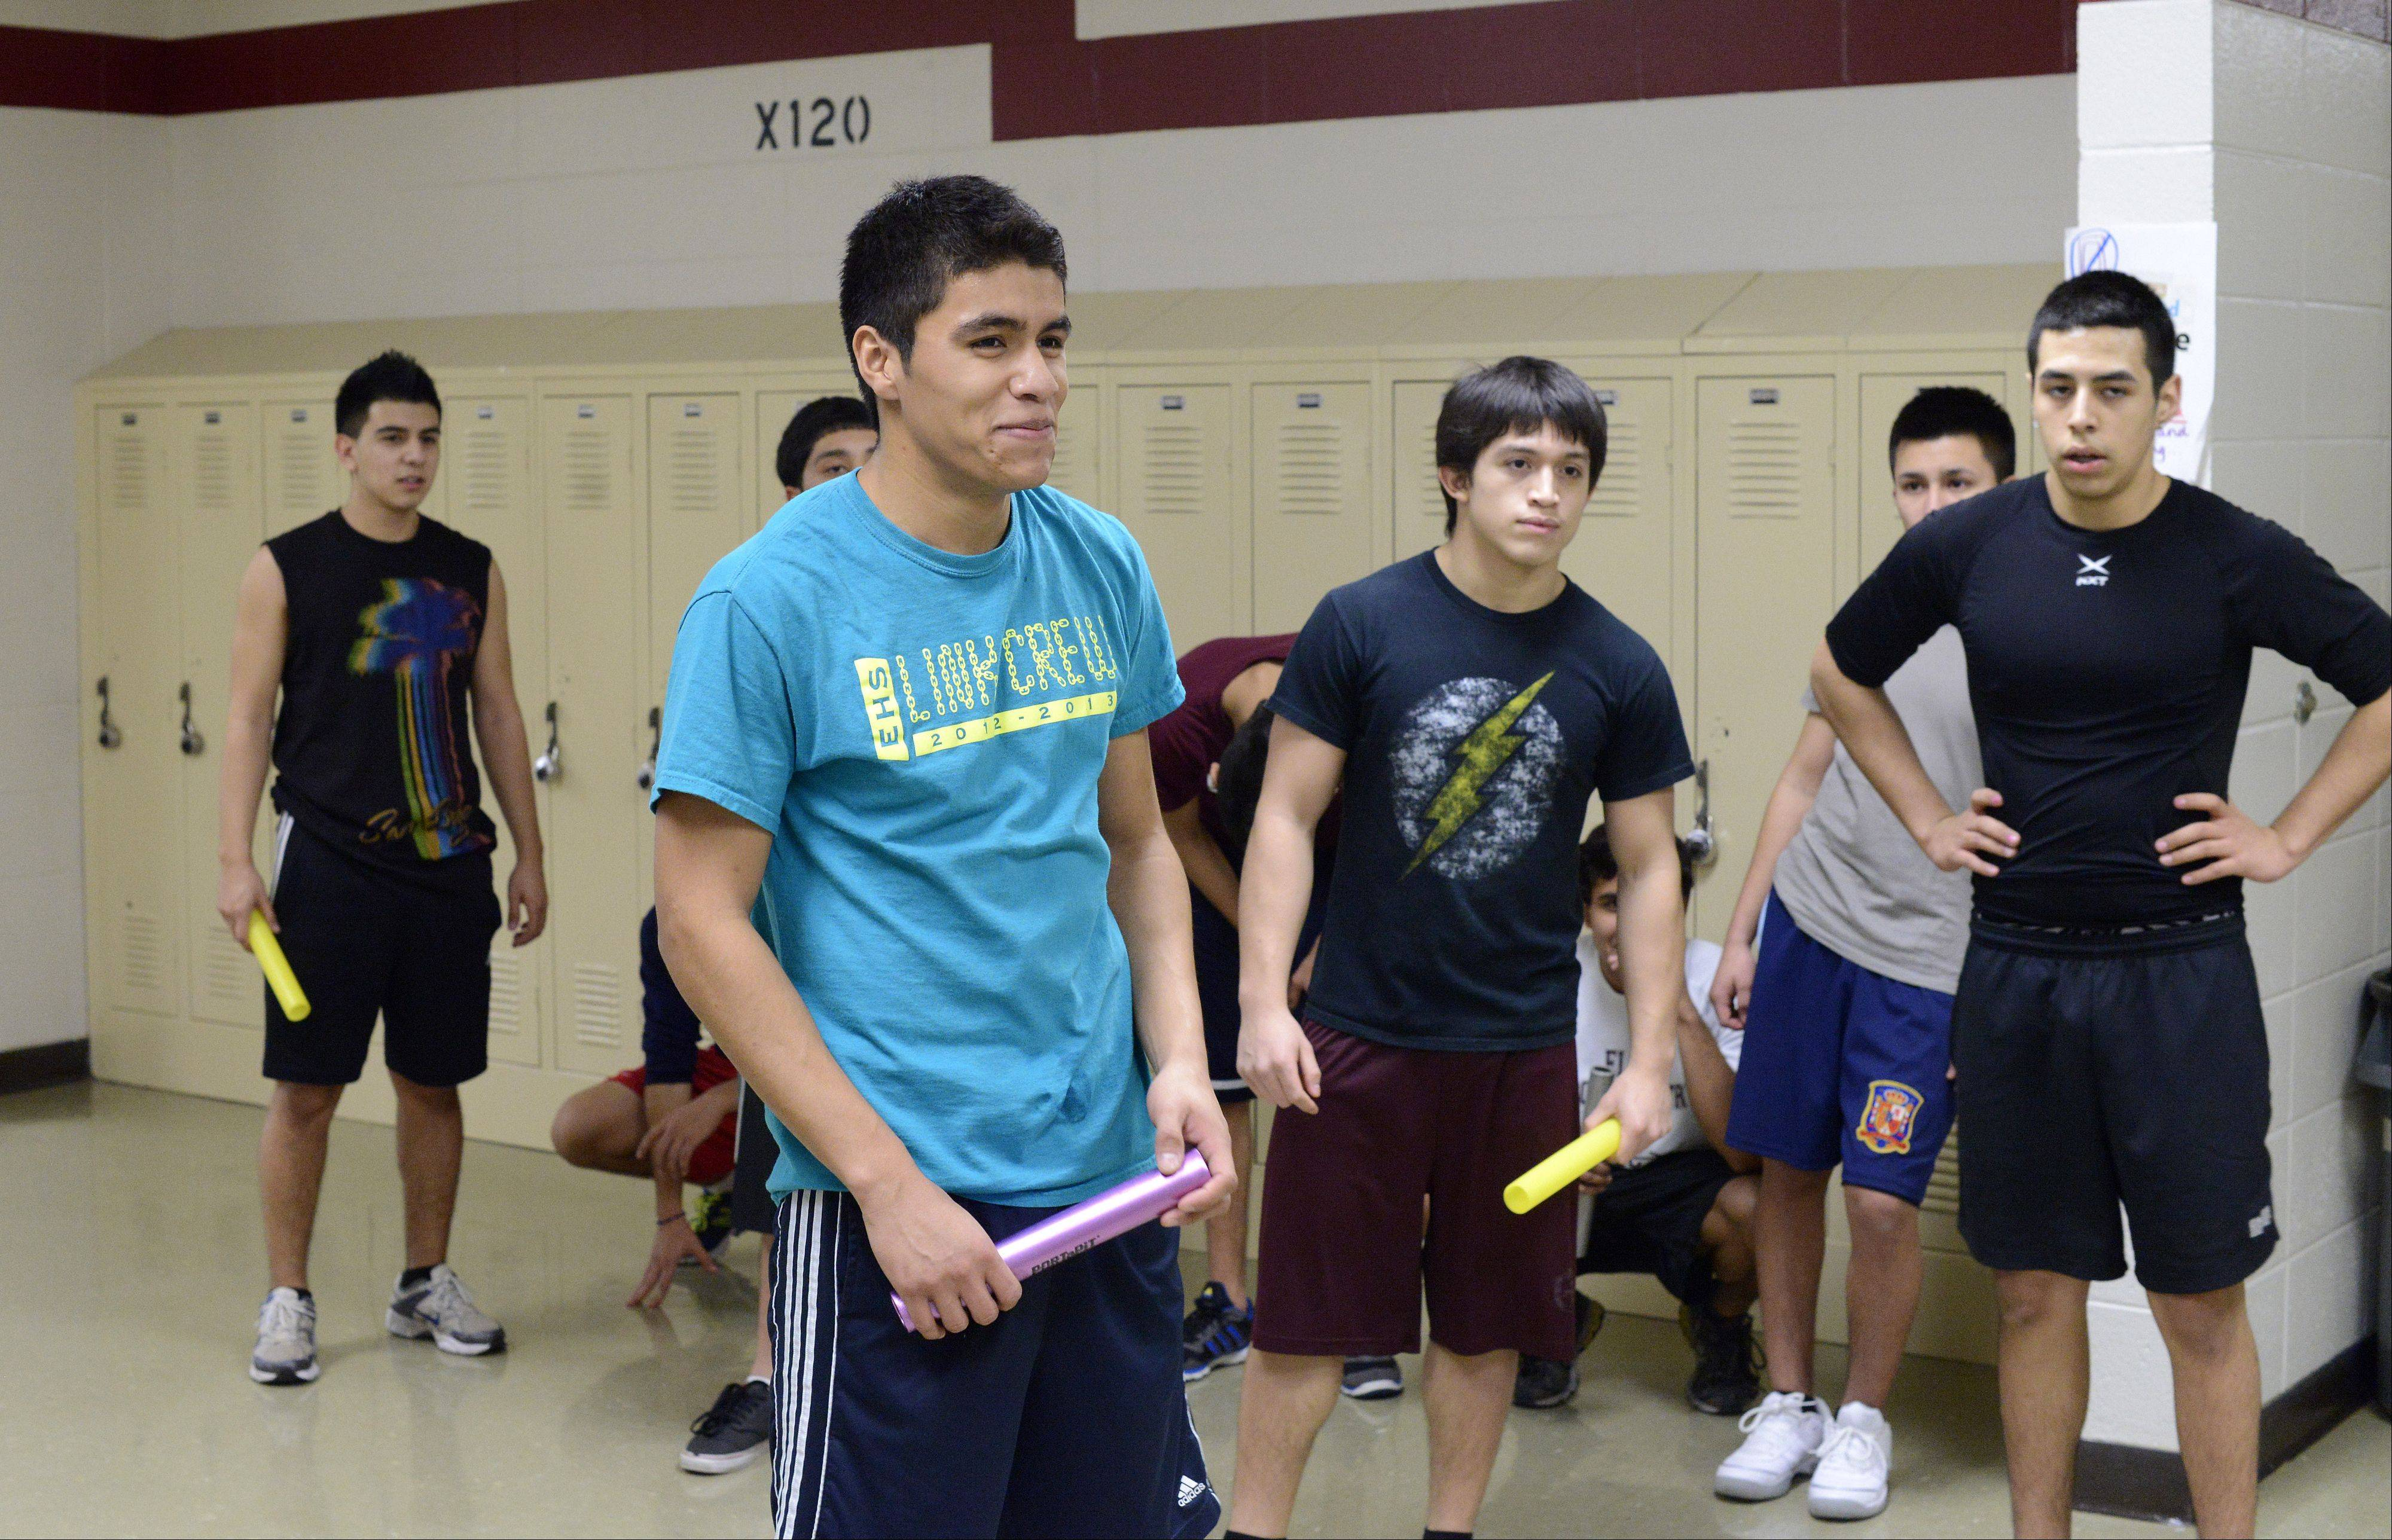 Eduardo Perez, a Elgin High School senior, and other members of the Elgin High School track team are practicing indoors for their upcoming season. Eduardo, who recently accepted a four-year scholarship to Stanford University, also is on Elgin High's soccer and swim teams.